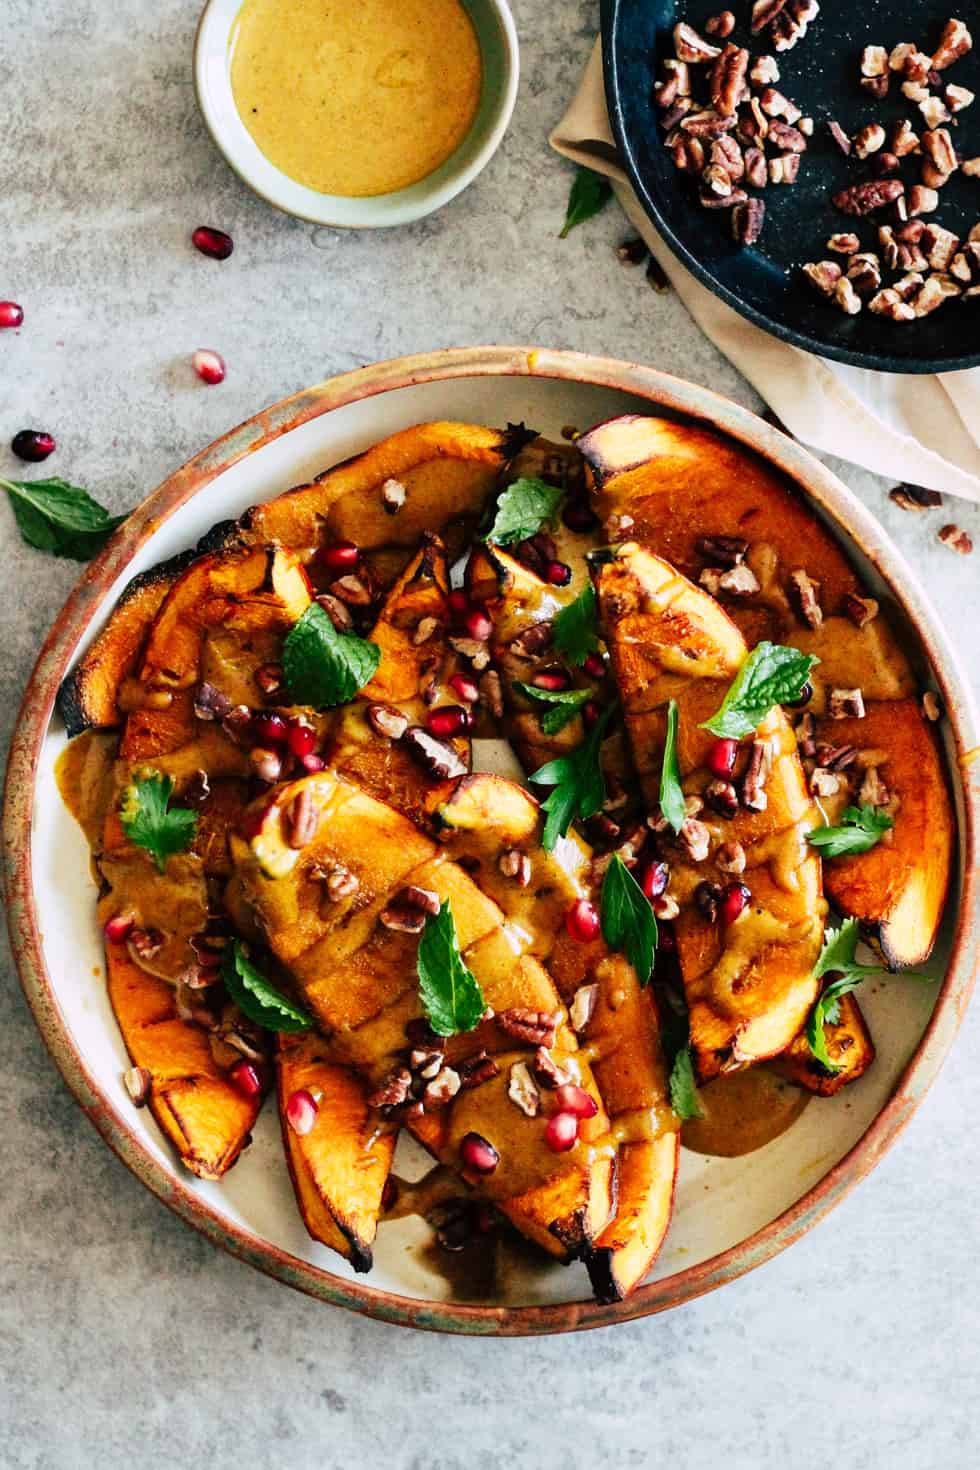 Roasted squash in ceramic dish with toasted pecans and yellow curry sauce.